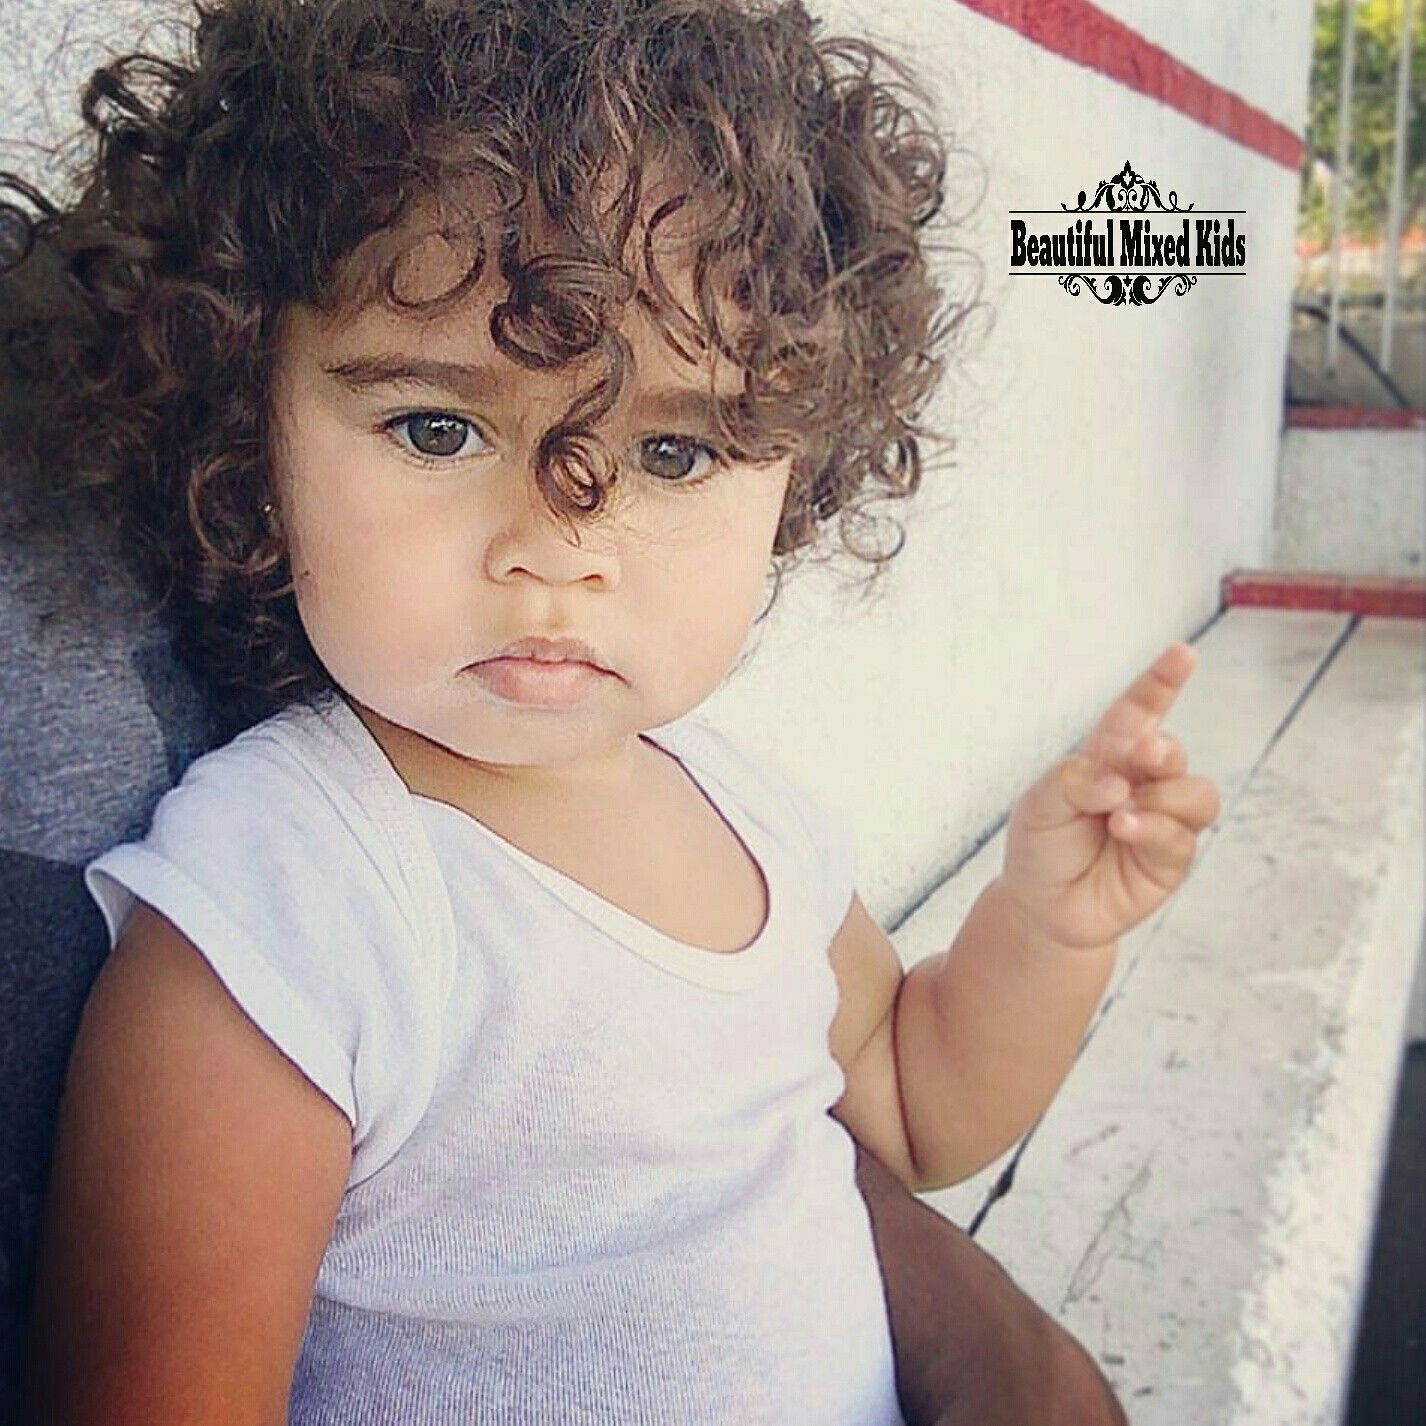 kamiah single hispanic girls Kamiah 4 years old caucasian & african american  ezra - 6 years • african  american & caucasian ❤ beautiful little girl beautiful little girlspretty  sophia  elána • 4 • african american & mexican ♥   follow instagramcom/  meet single  asian men and black women on our ambw / bwam blasian interracial dating  site.